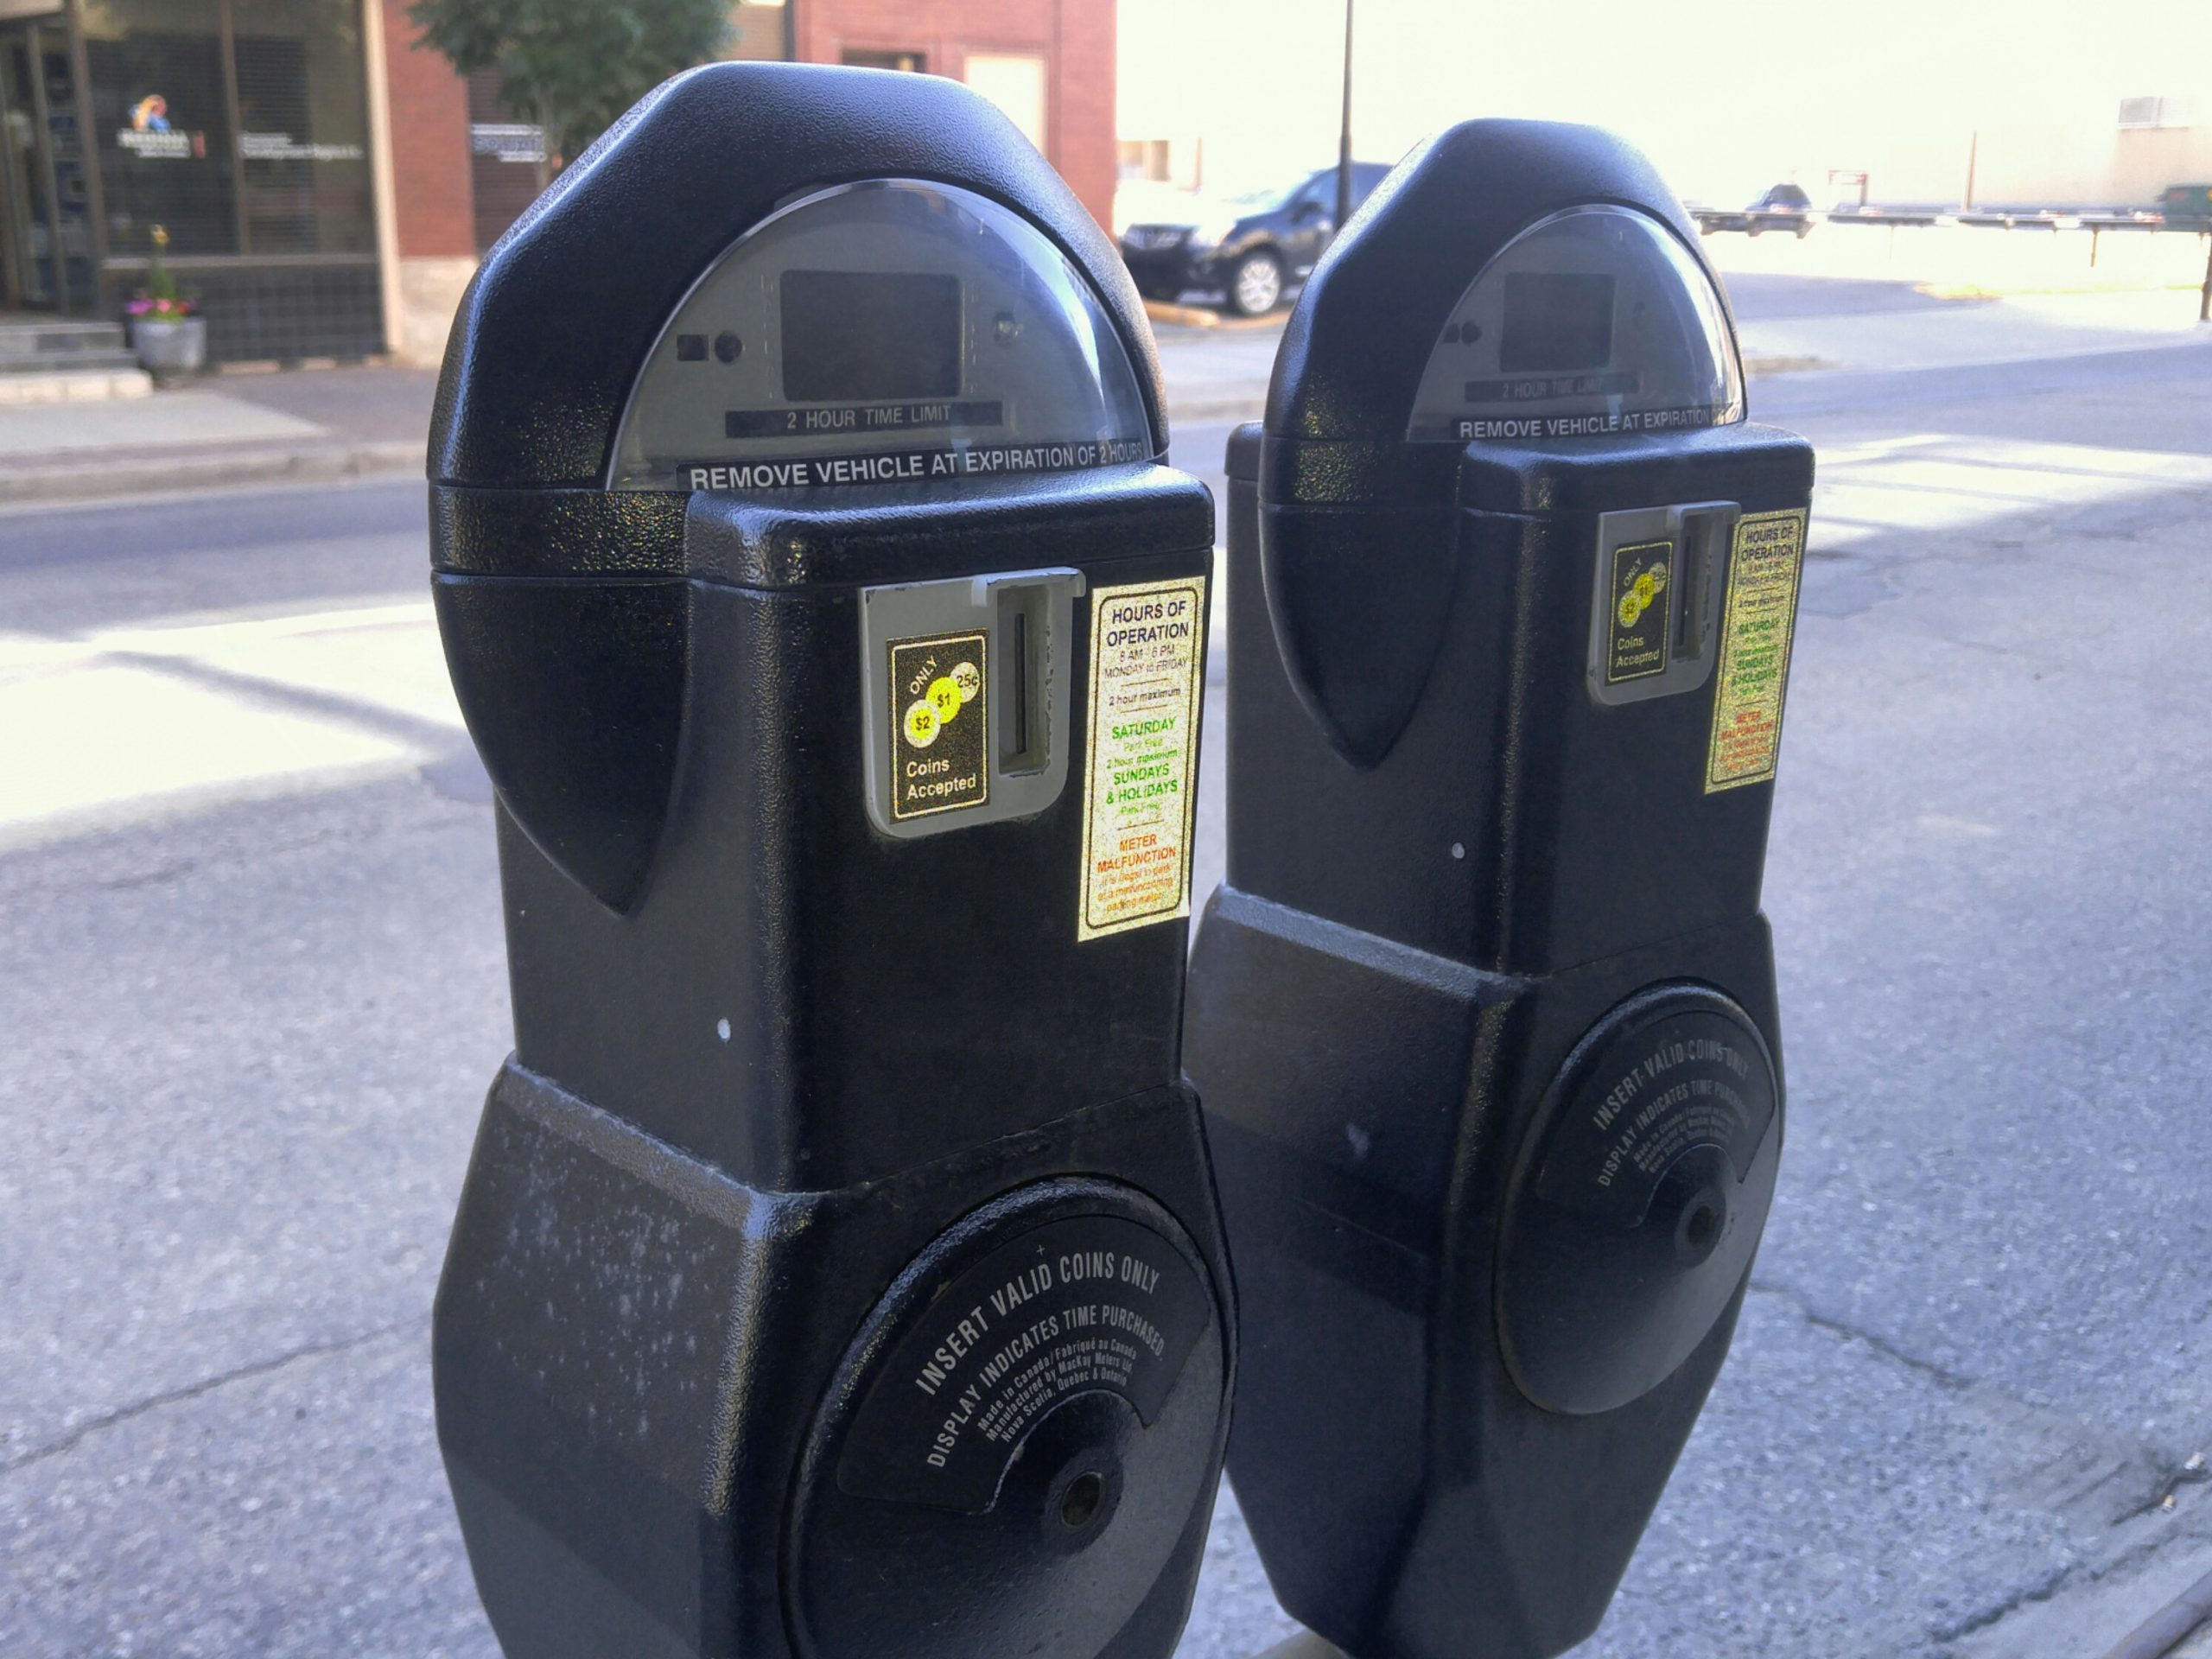 Parking fines go up across Regina